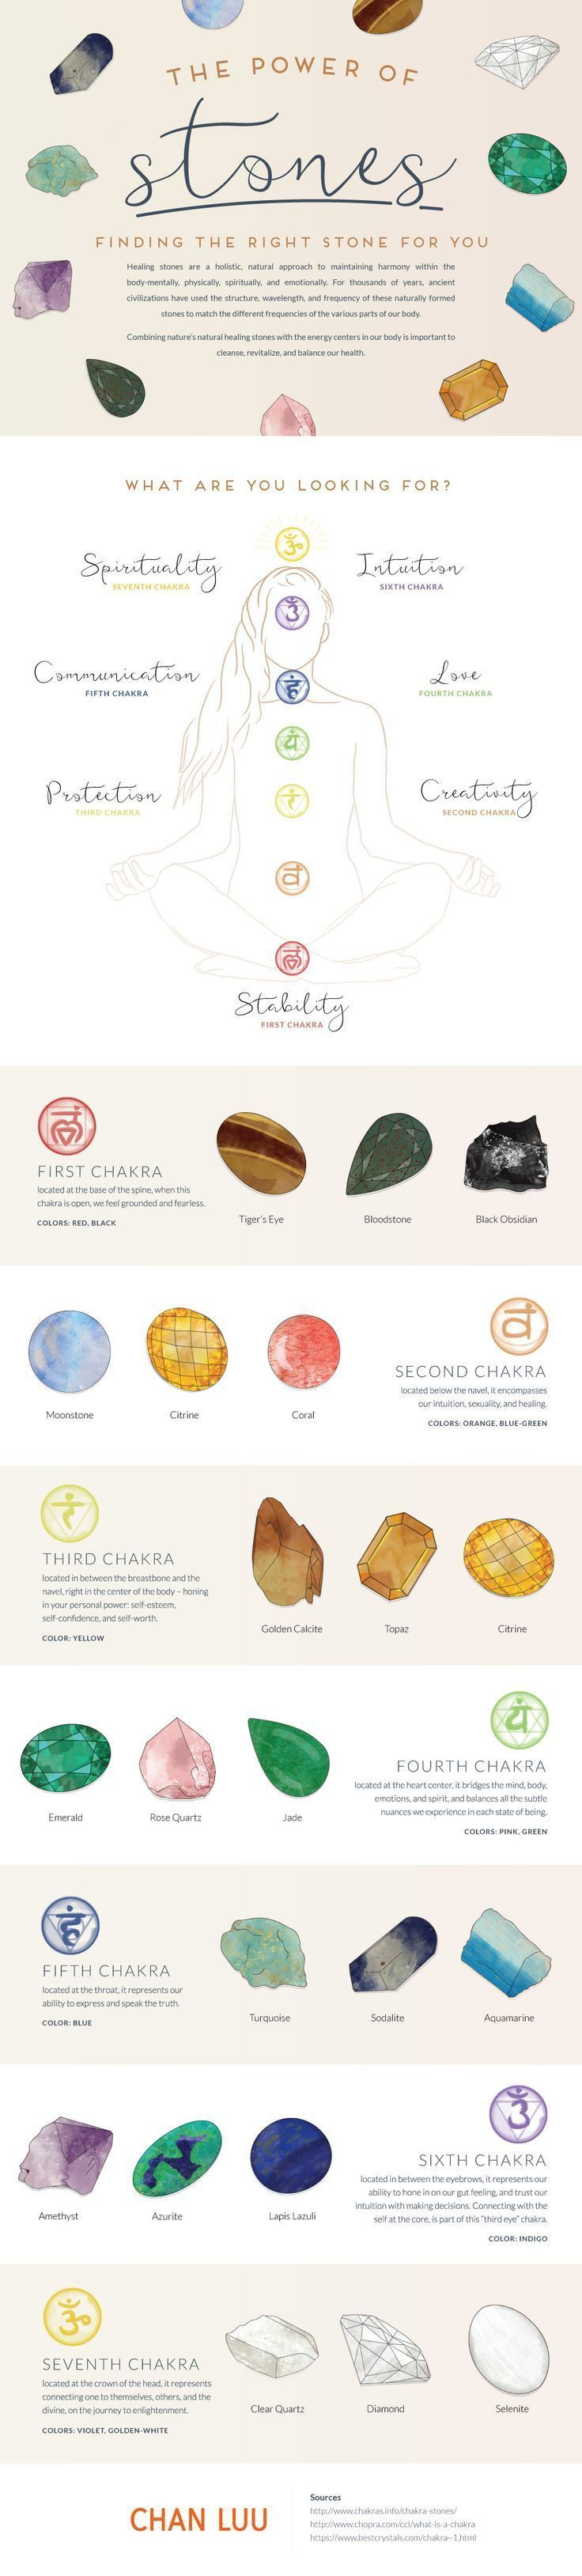 Stones are becoming more and more popular in jewelry pieces. However, not many people know the original meanings and supposed powers associated with stones. Each chakra has a crystal or a healing stone associated with it to improve the flow of energy with